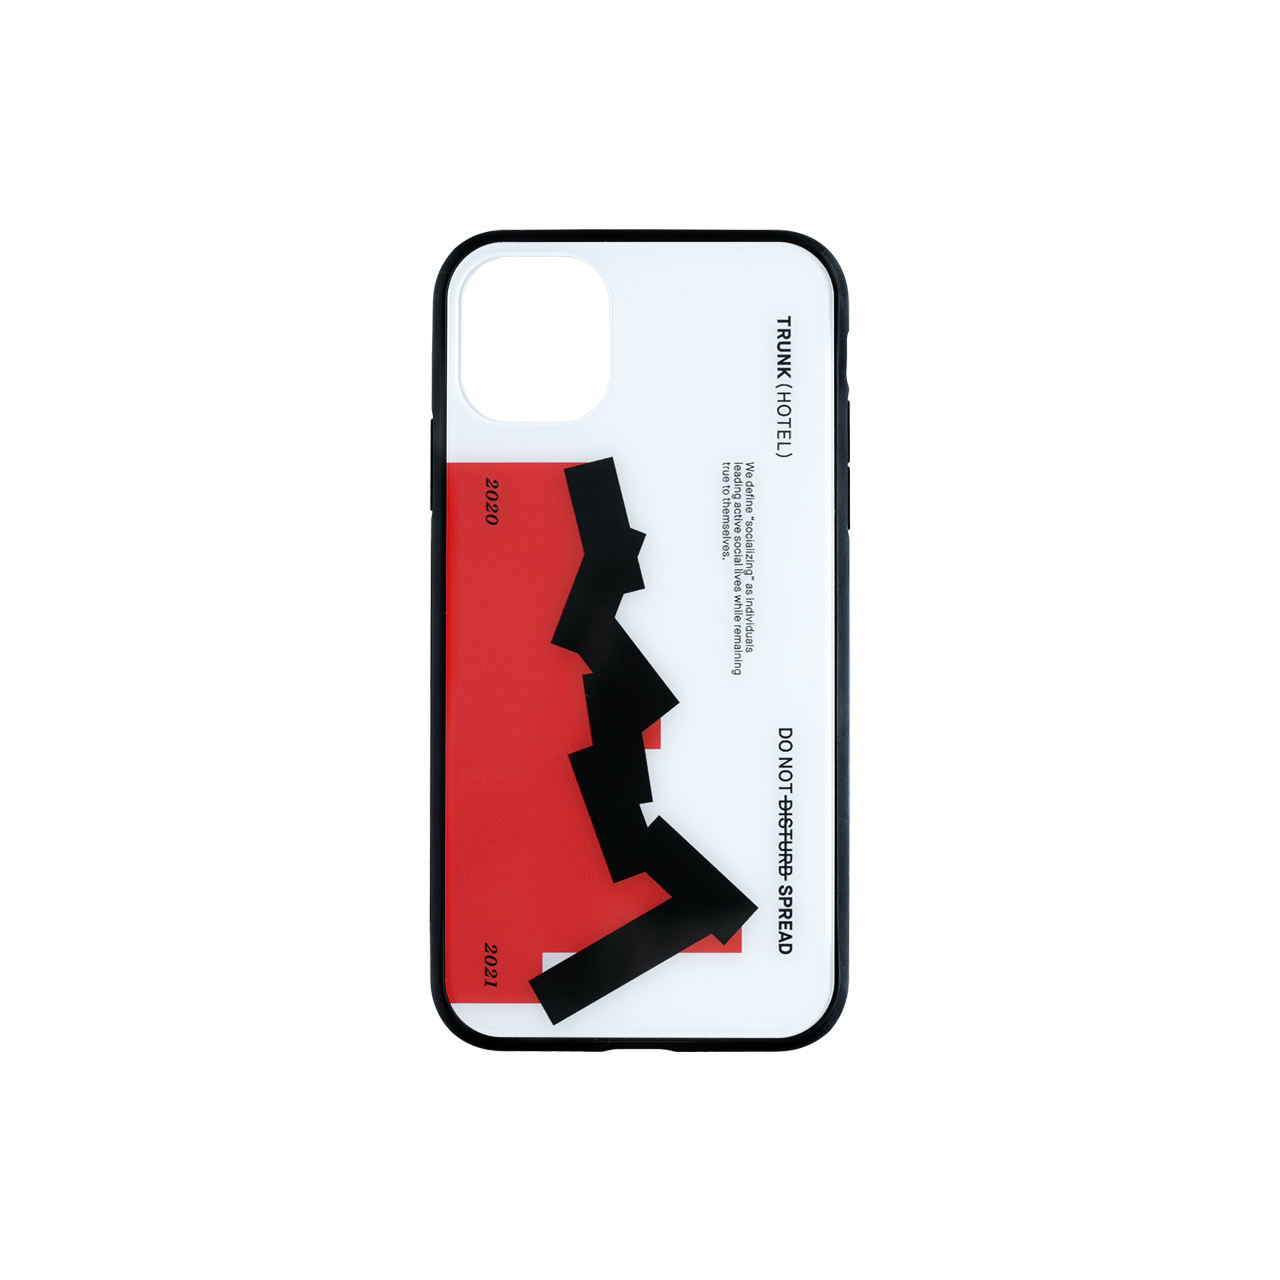 iPhone Case -DO NOT SPREAD-